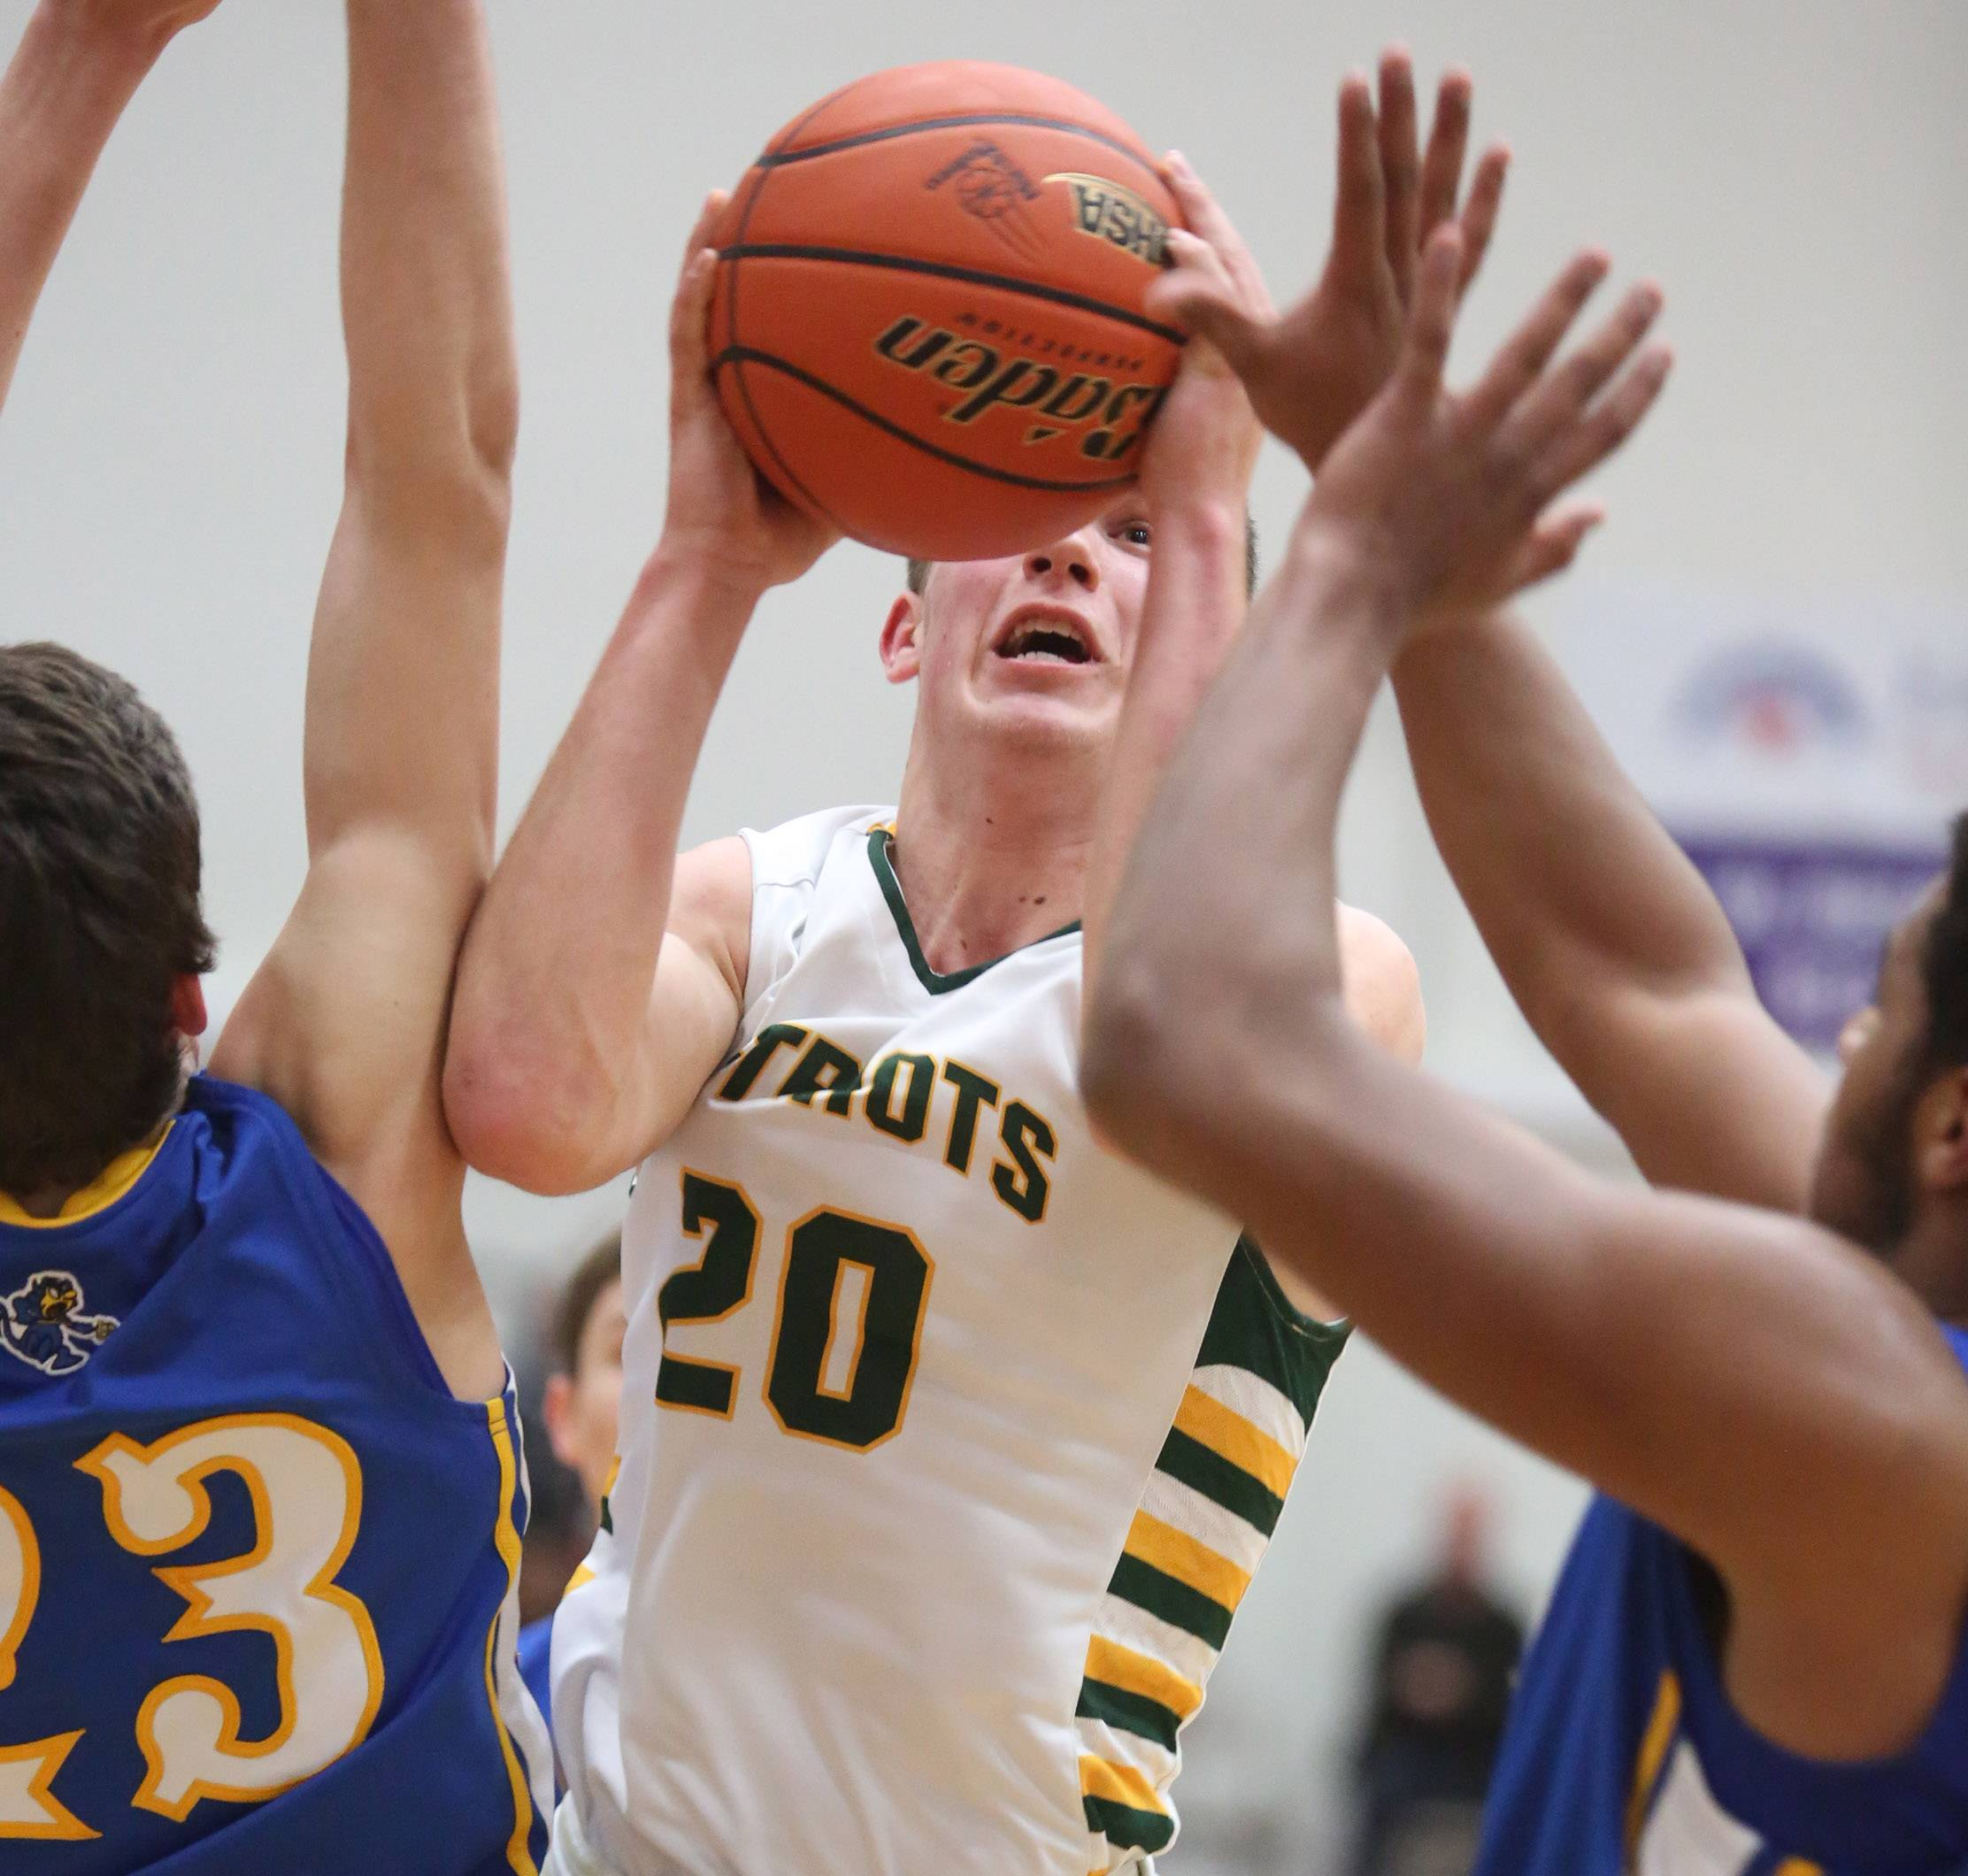 Images from the Stevenson vs. Warren boys basketball game on Friday, March 7 in McHenry.